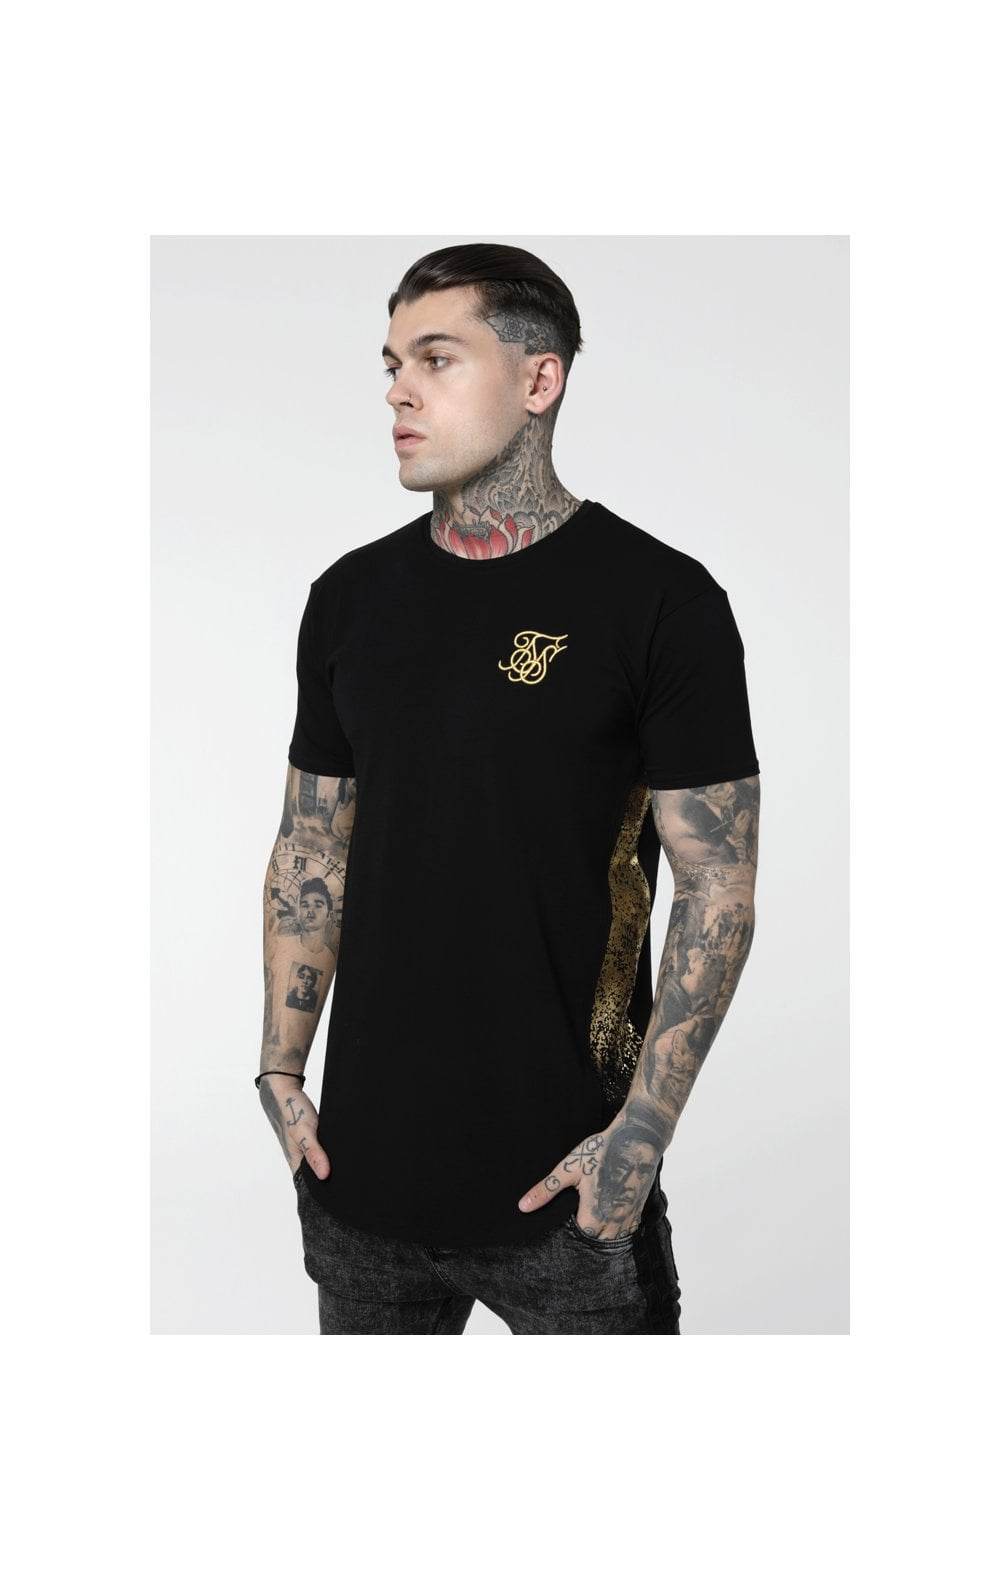 SikSilk S/S Foil Fade Panel Tee - Black & Gold